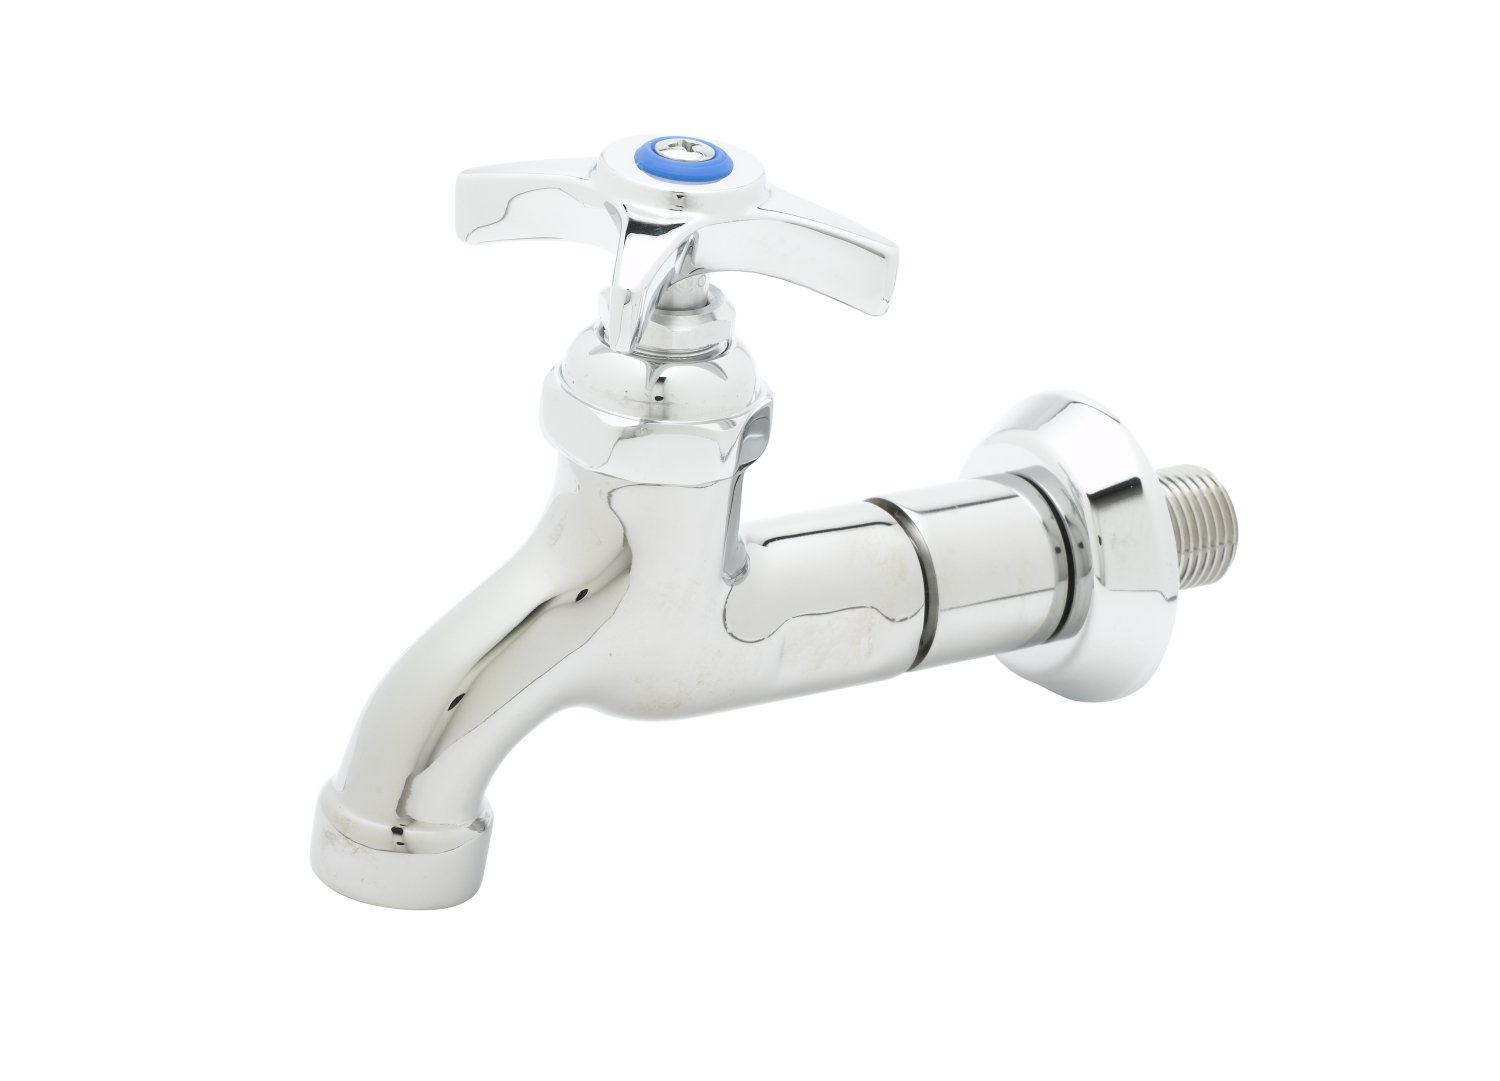 T&S Brass B-0718 Sill Faucet, 1/2-Inch Npt Male Inlet, 4-Arm Handle, Adjustable Flange, 3/4-Inch Garden Hose Thread